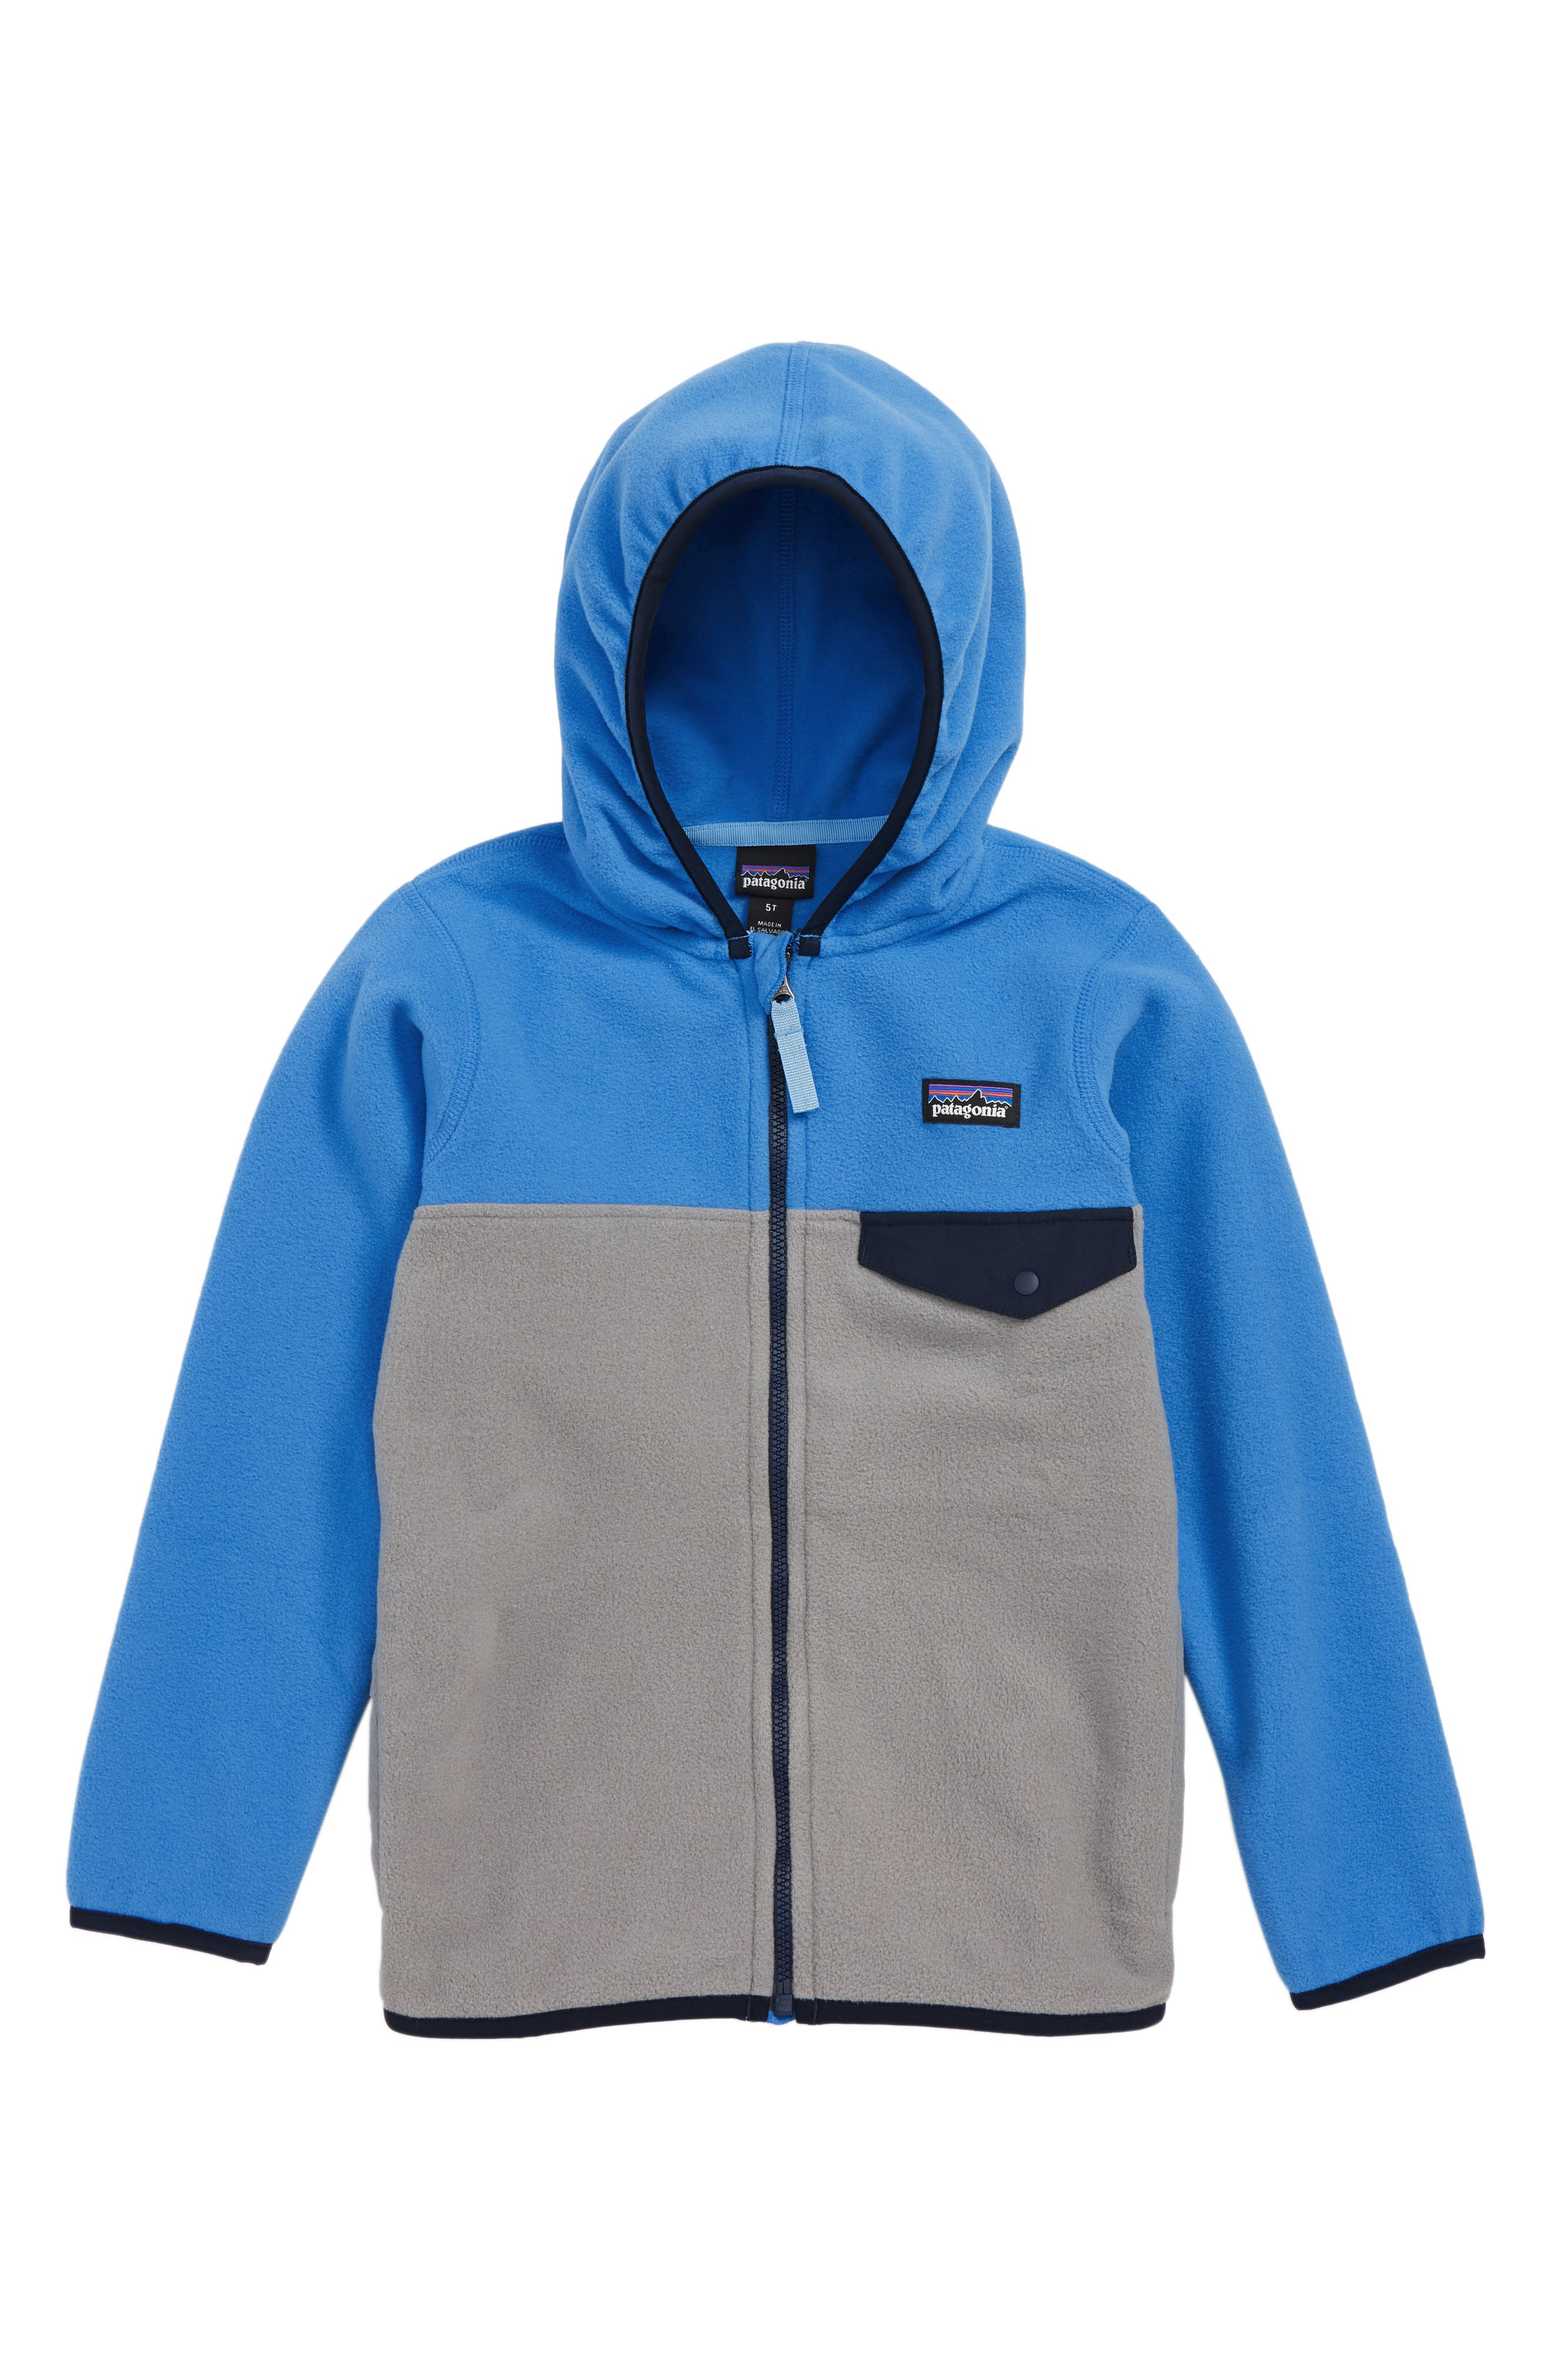 f1224c0b9 Patagonia Kids  Coats   Outerwear Clothing